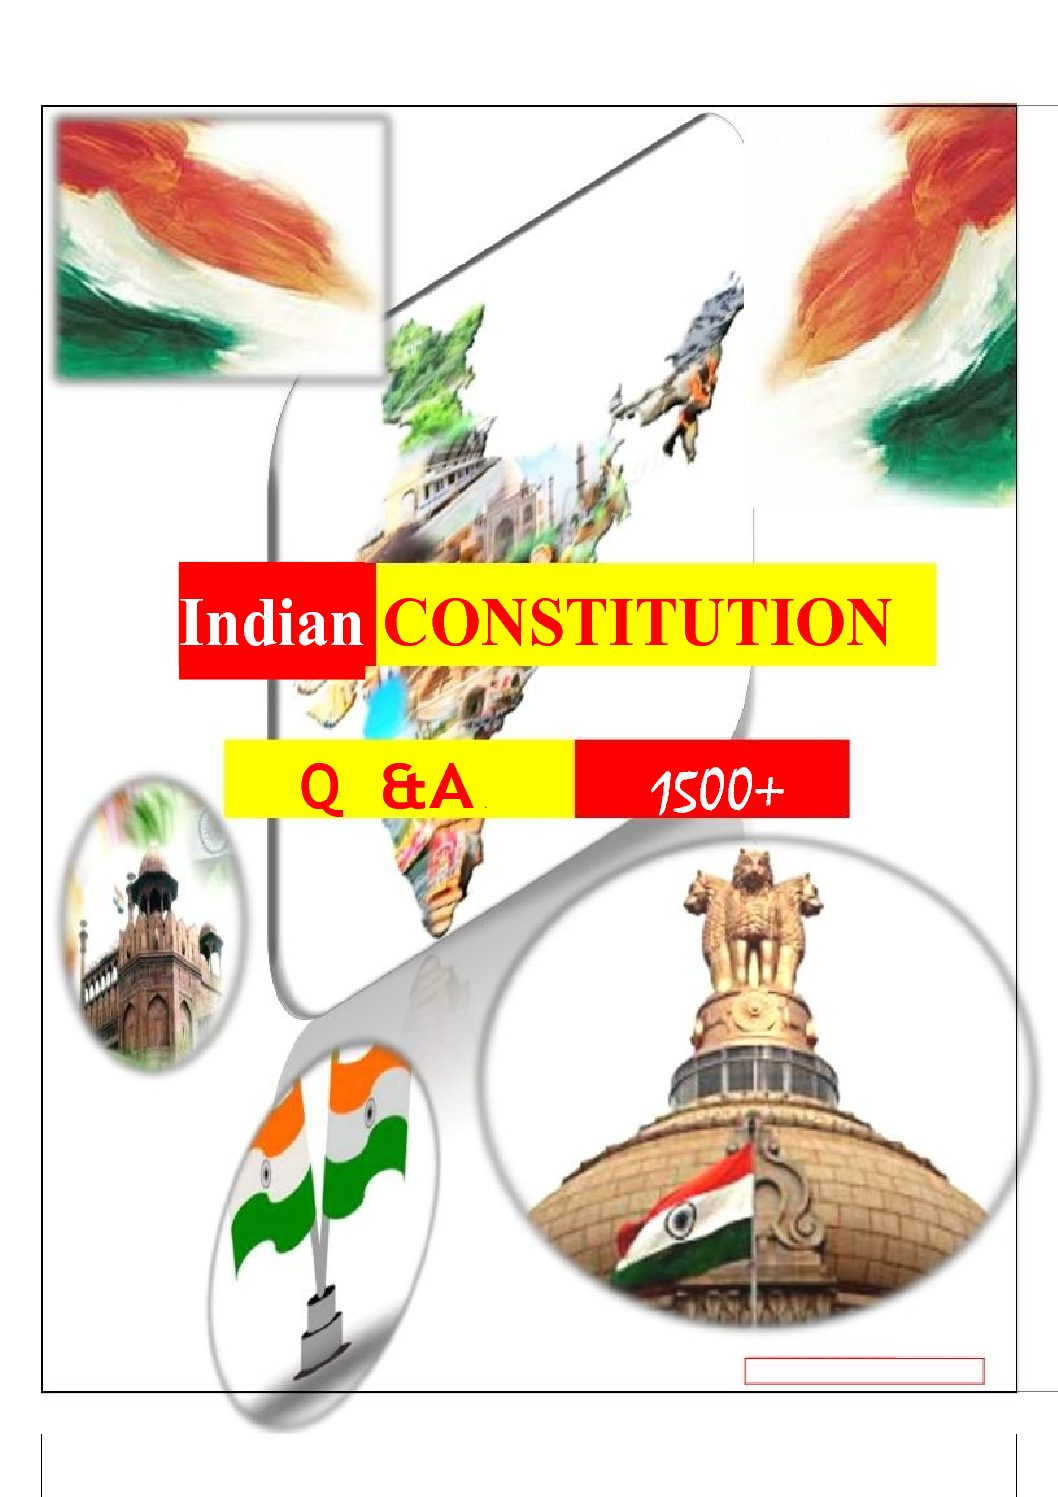 1500 INDIAN CONSTITUTION Questions Answers Pdf download